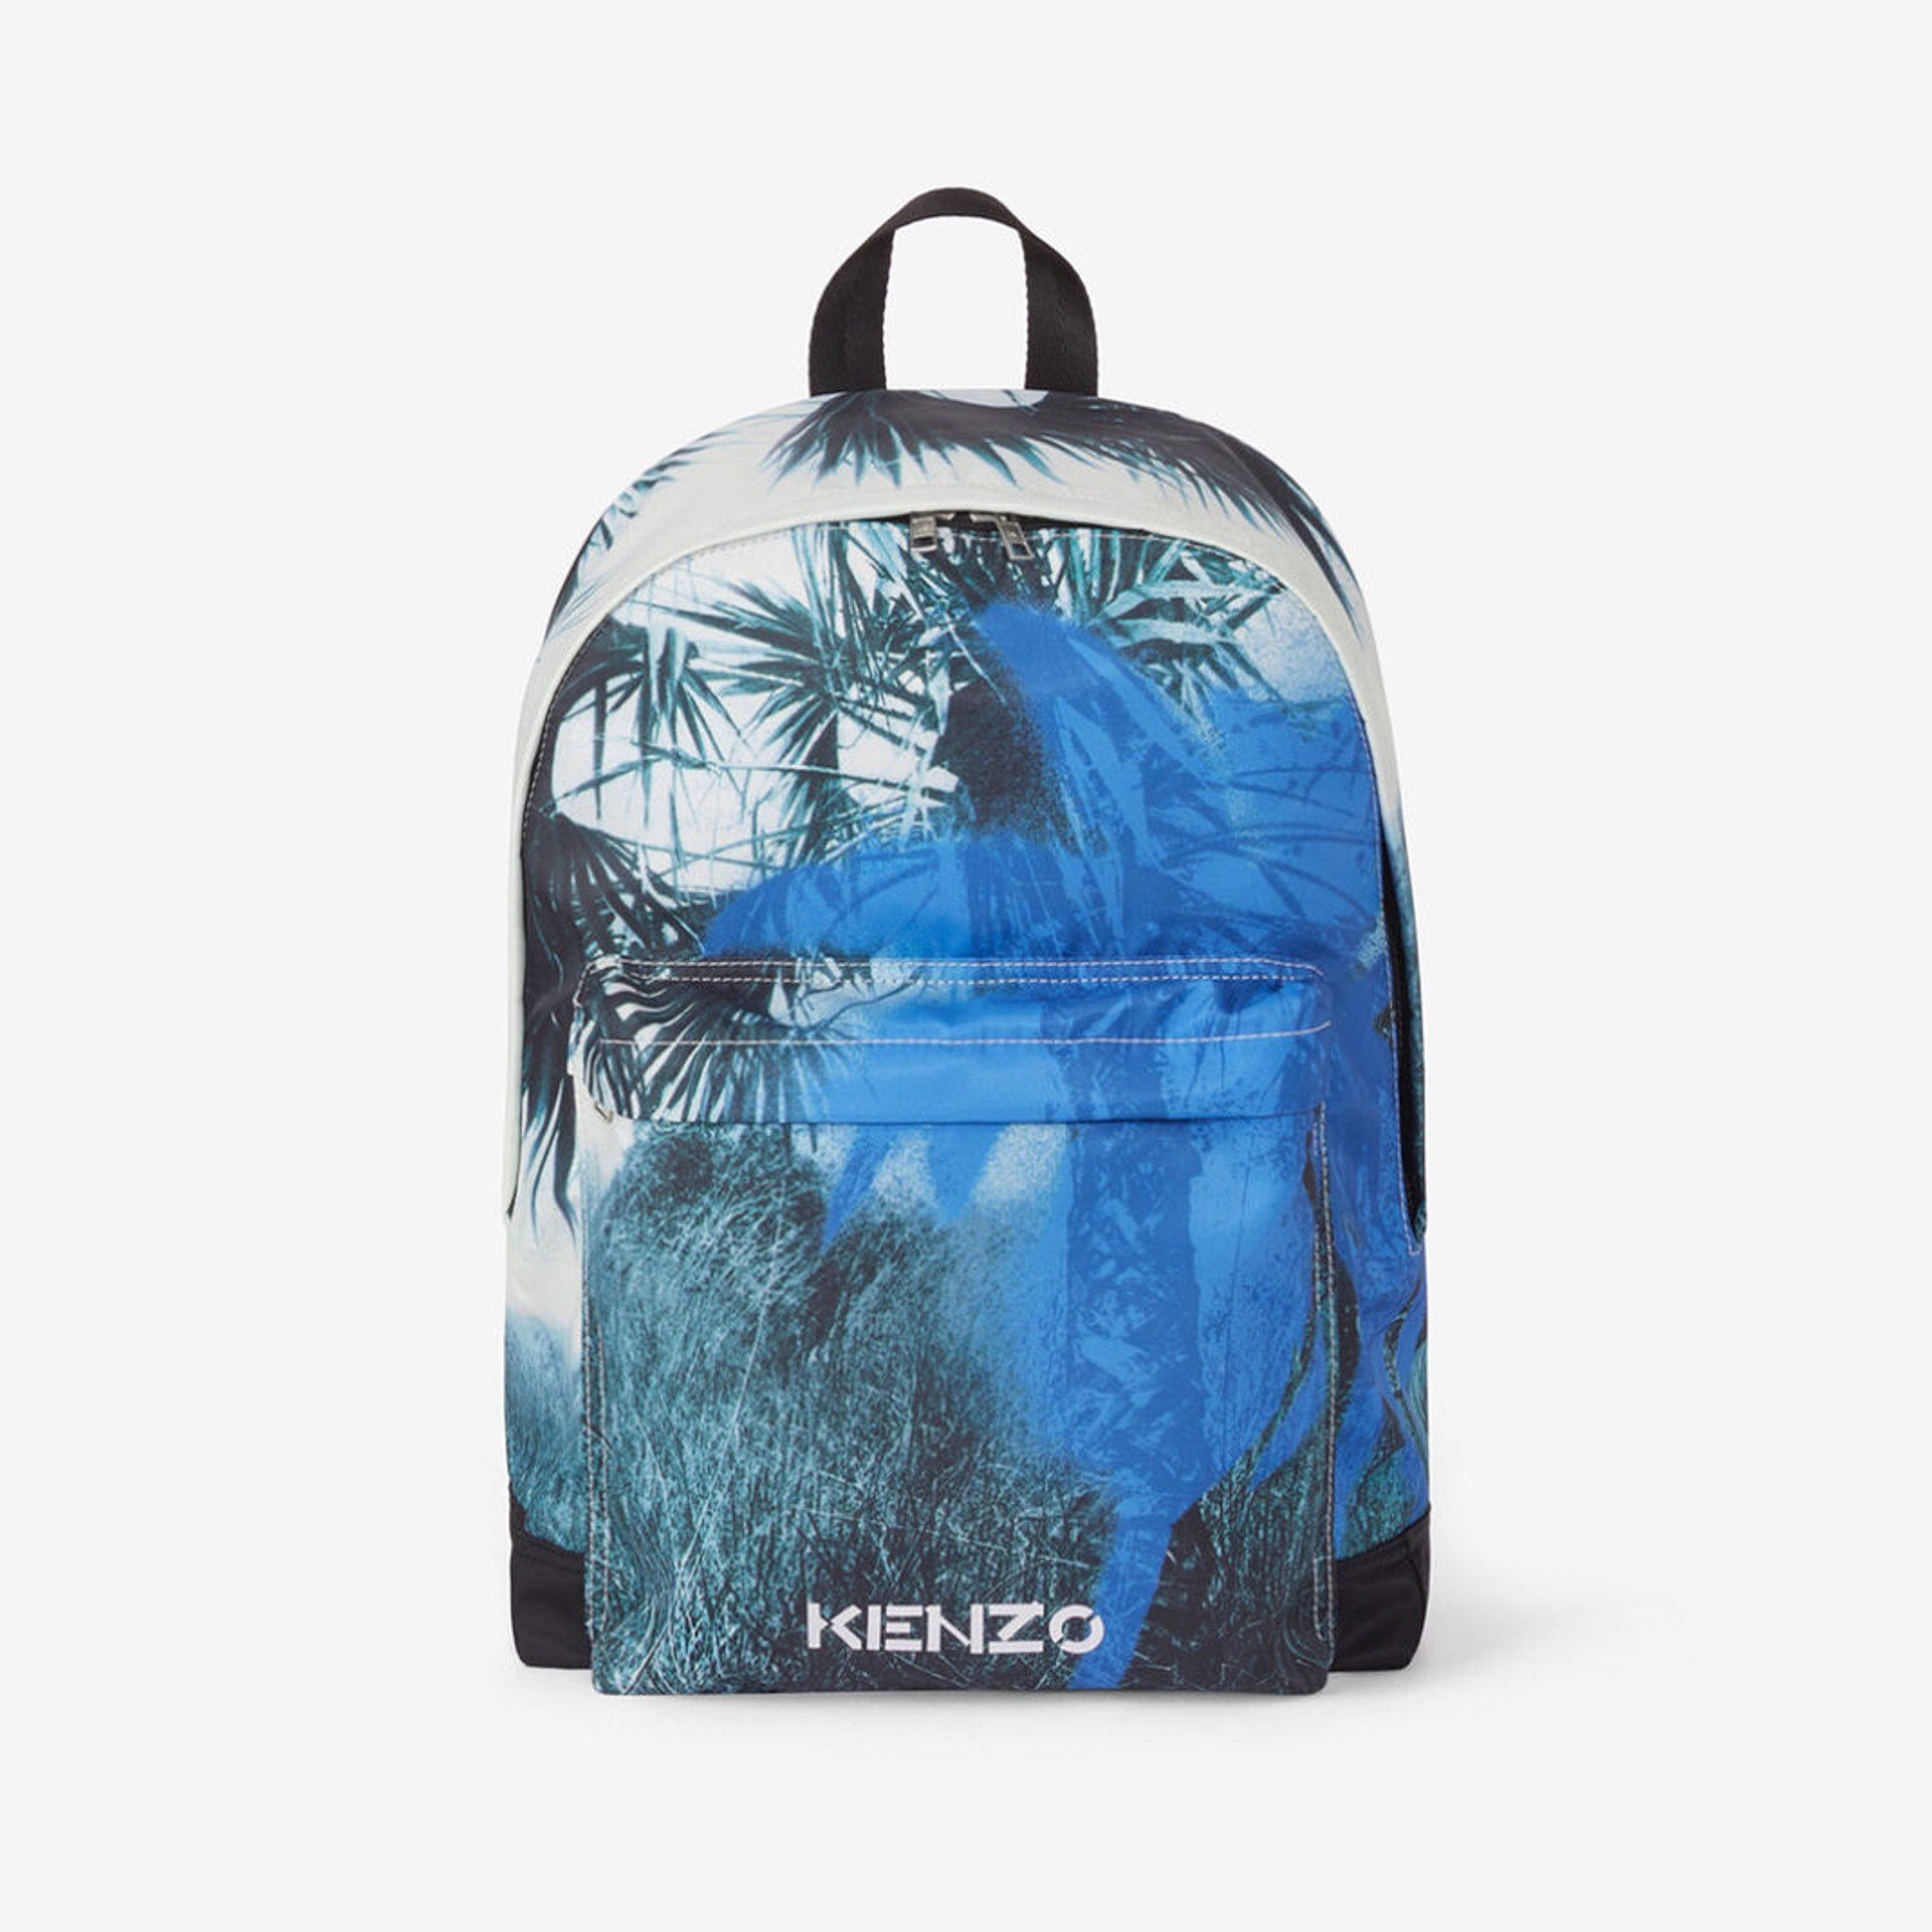 KENZO Hawaiian Graffiti Backpack - Cyan